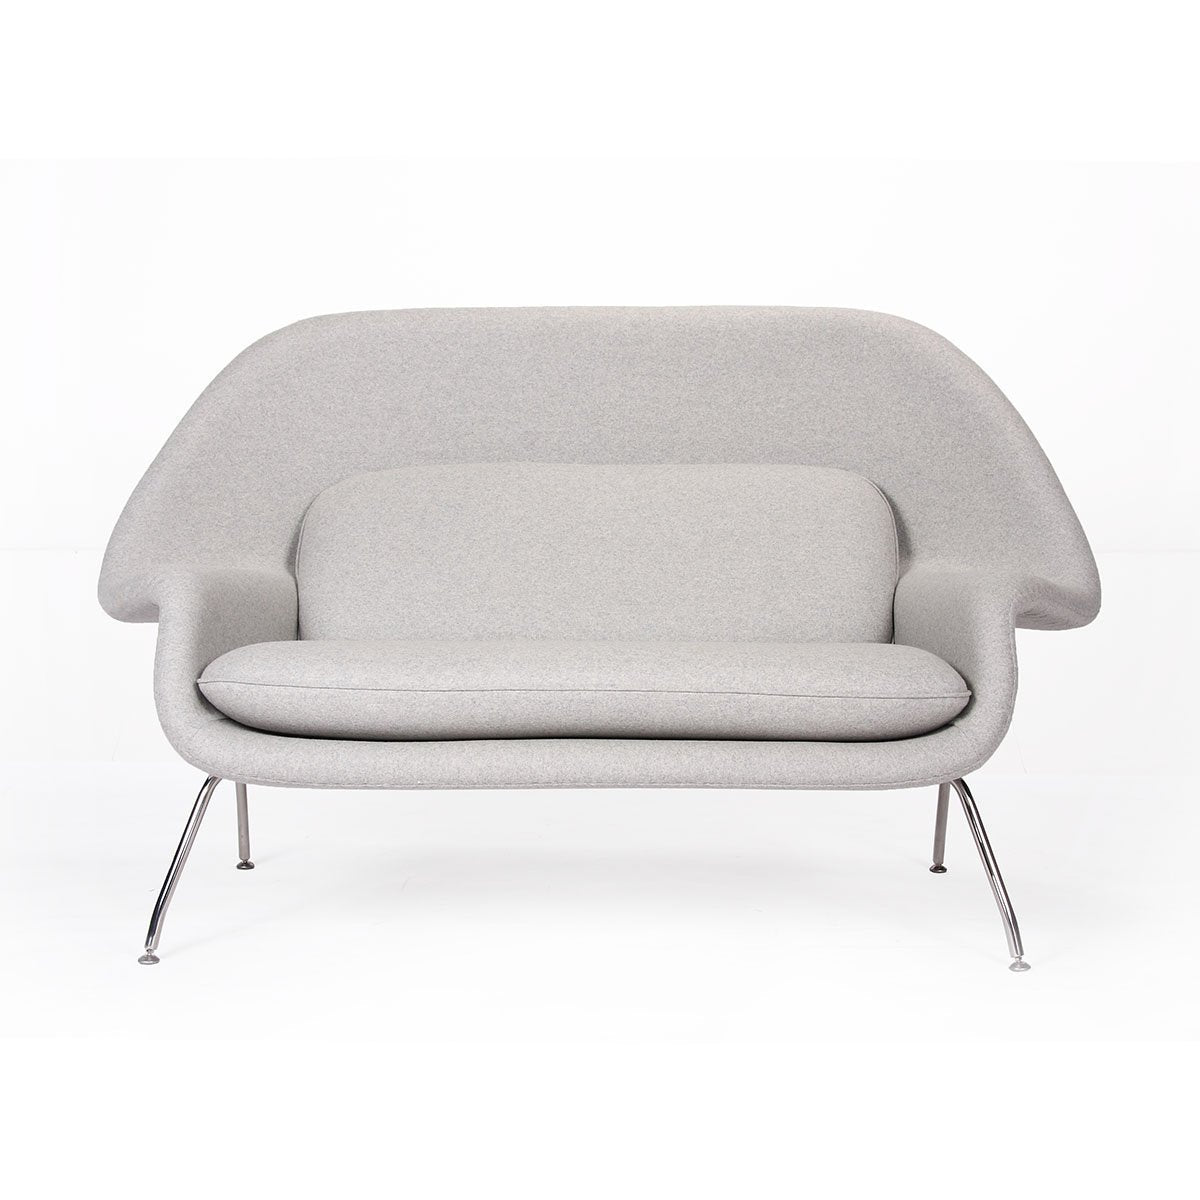 [FB2289LGREY] Womb Loveseat